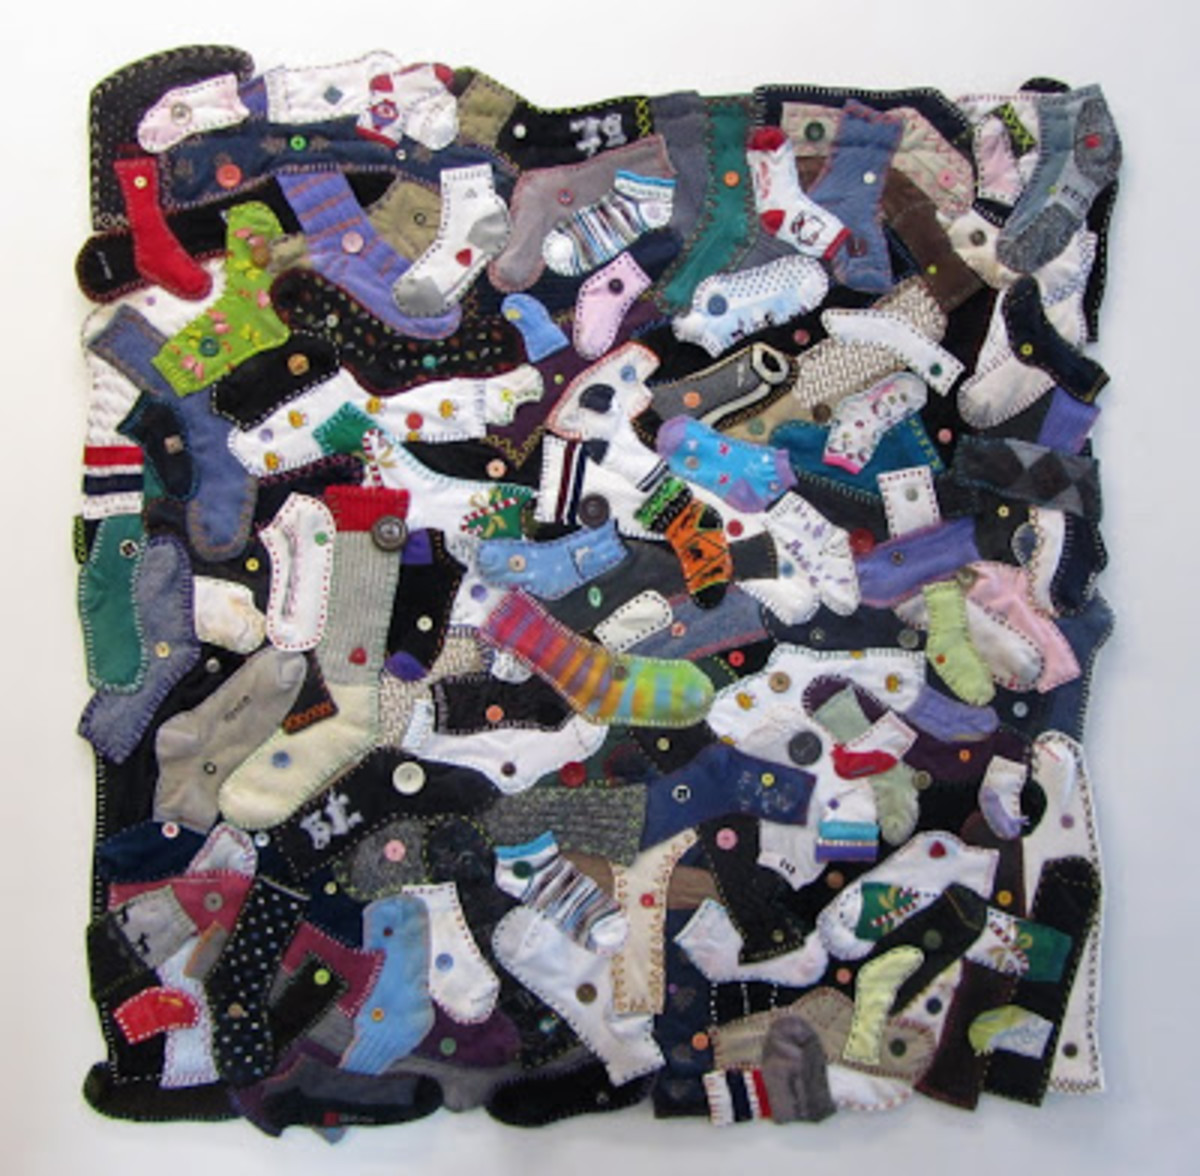 How To Recycle Socks For Crafts And Other Household Uses